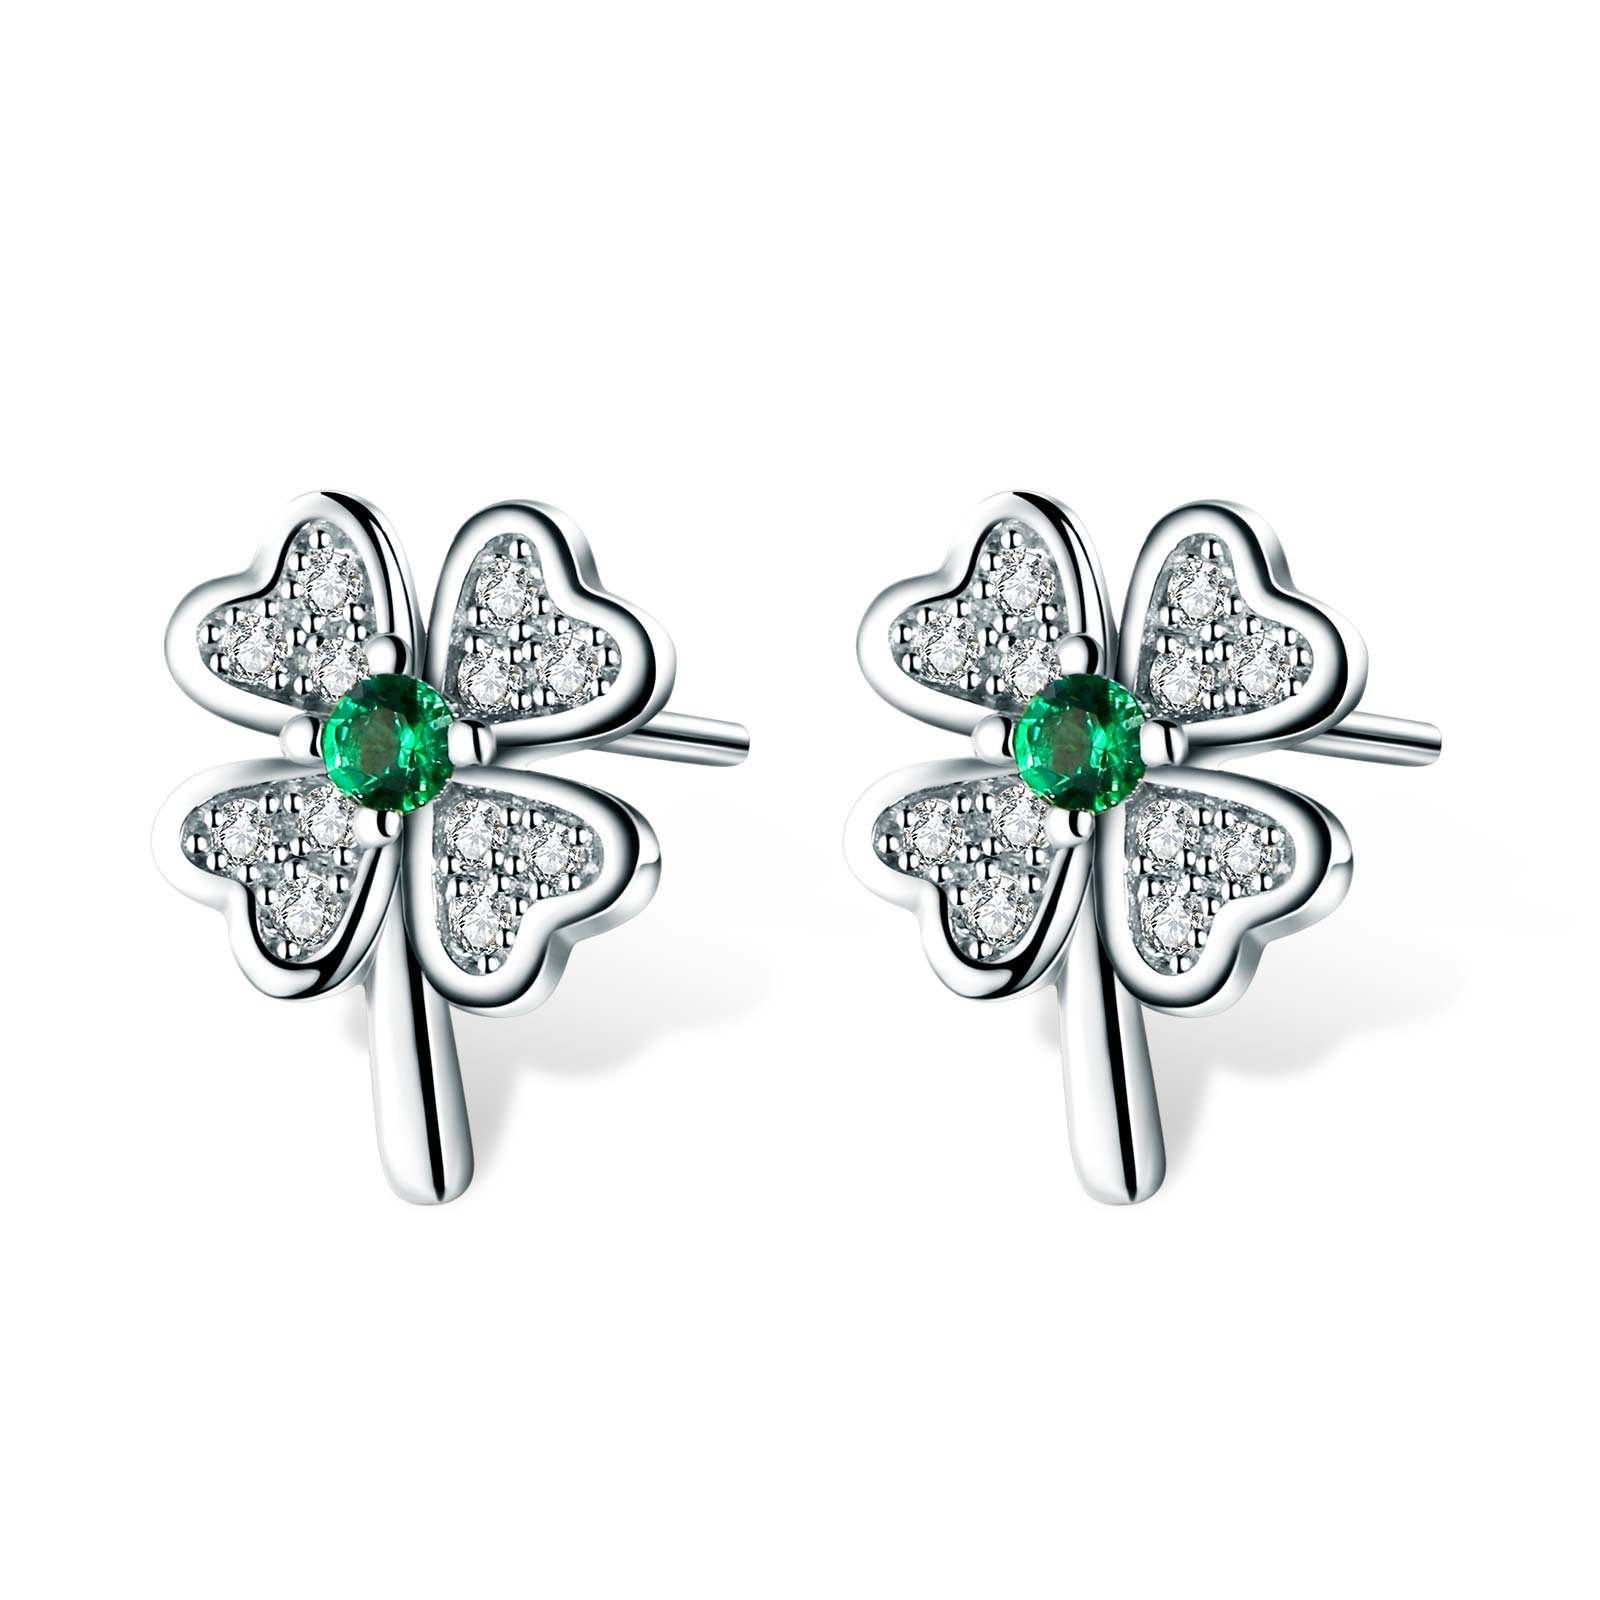 T400 Jewelers 925 Sterling Silver Four Leaf Clover Stud Earrings Made with Emerald Cubic Zirconia for Women Gift